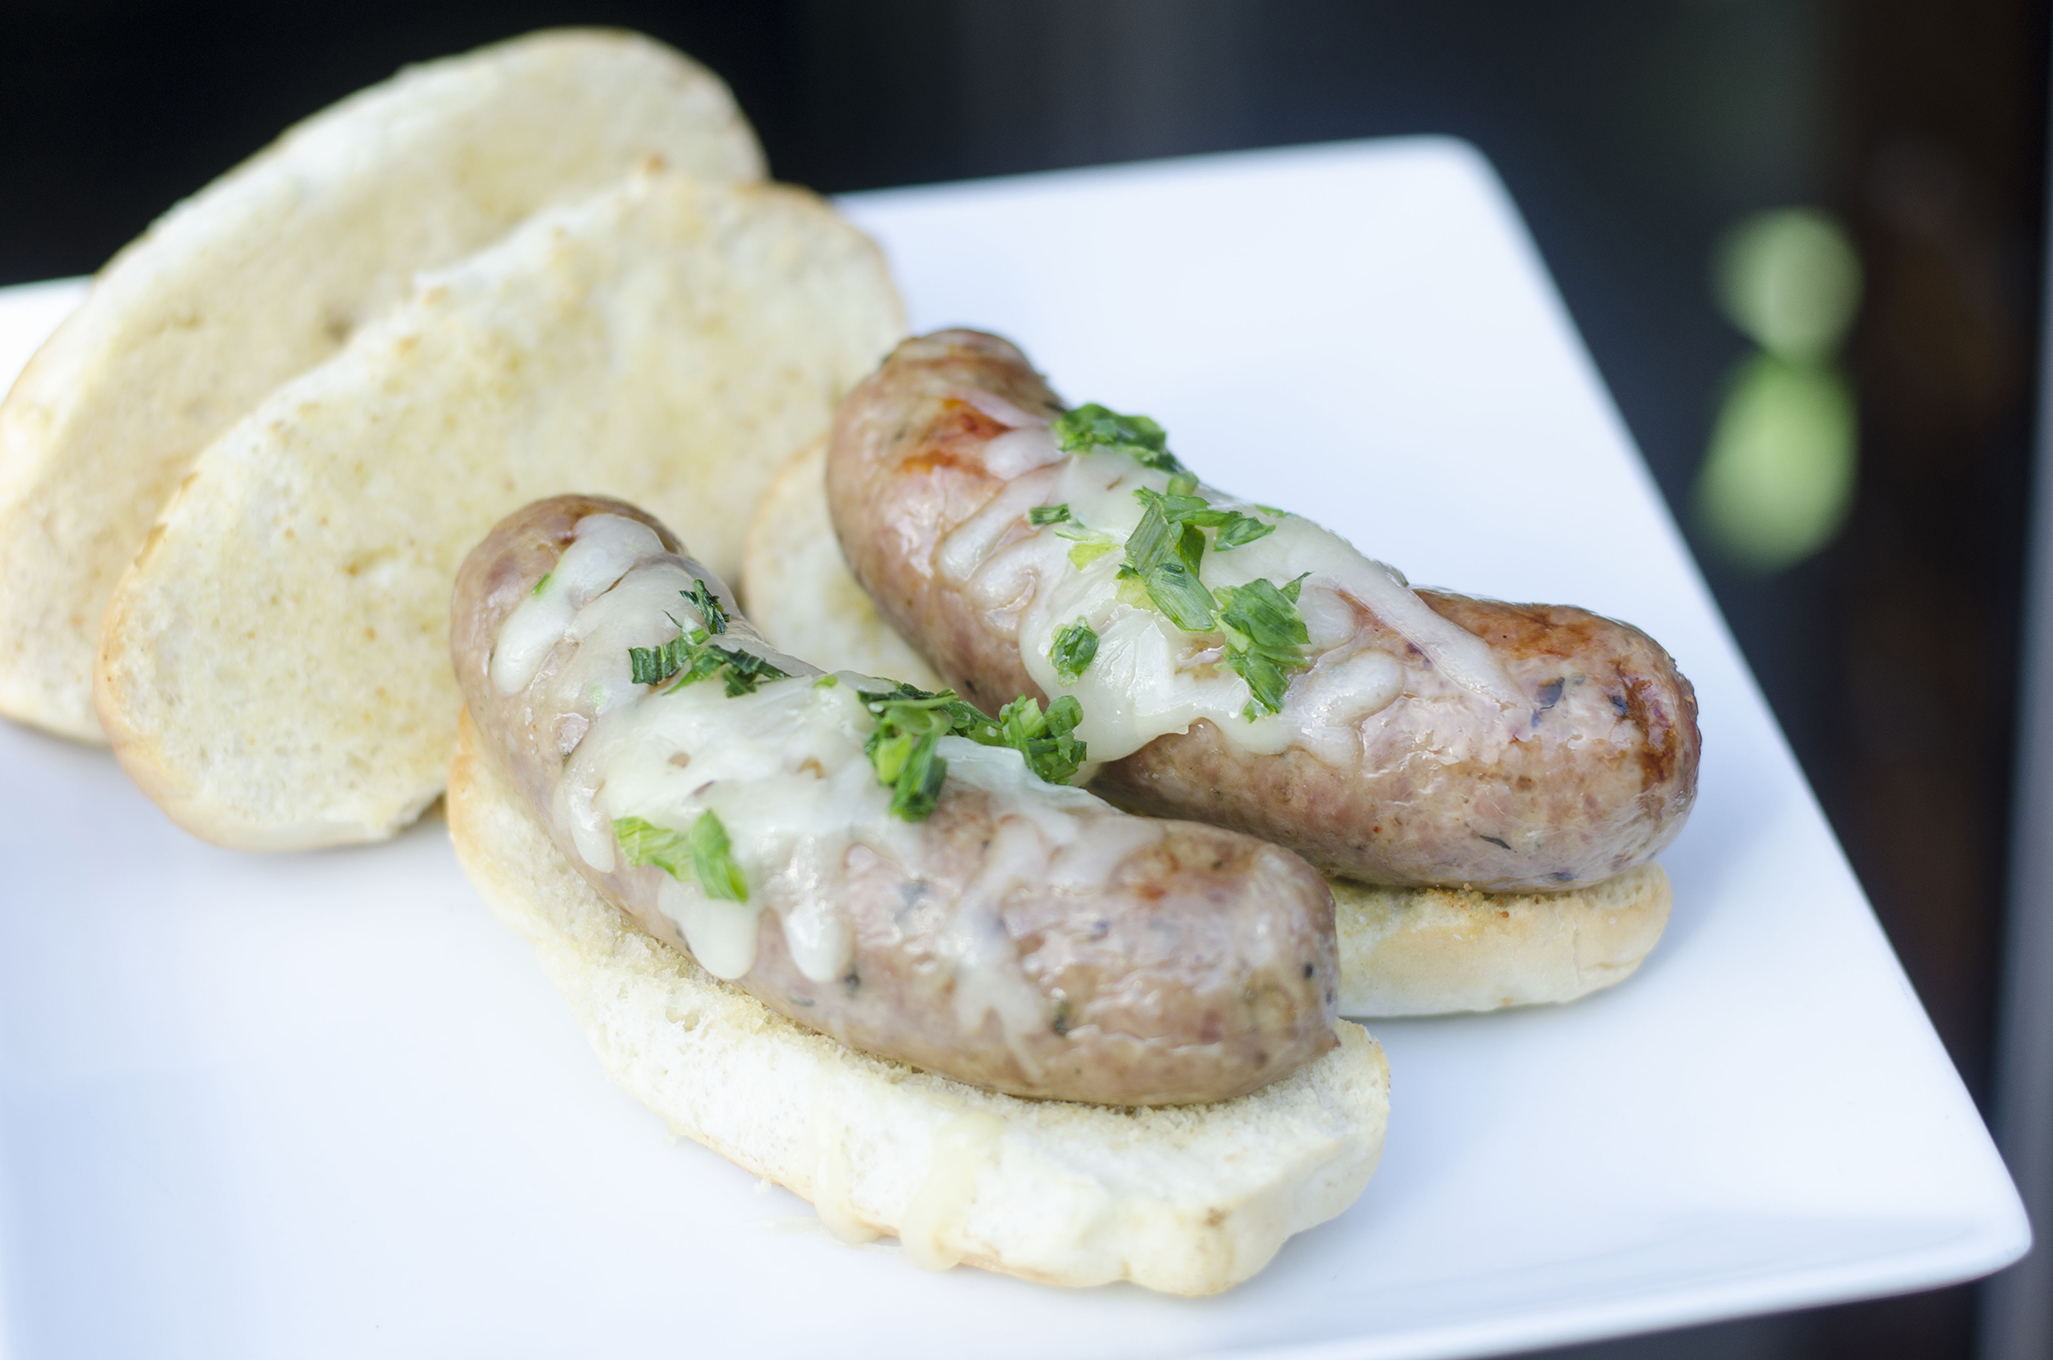 The French Onion sausage from Robbie's Gourmet Sausage Company in Windsor, Ontario.